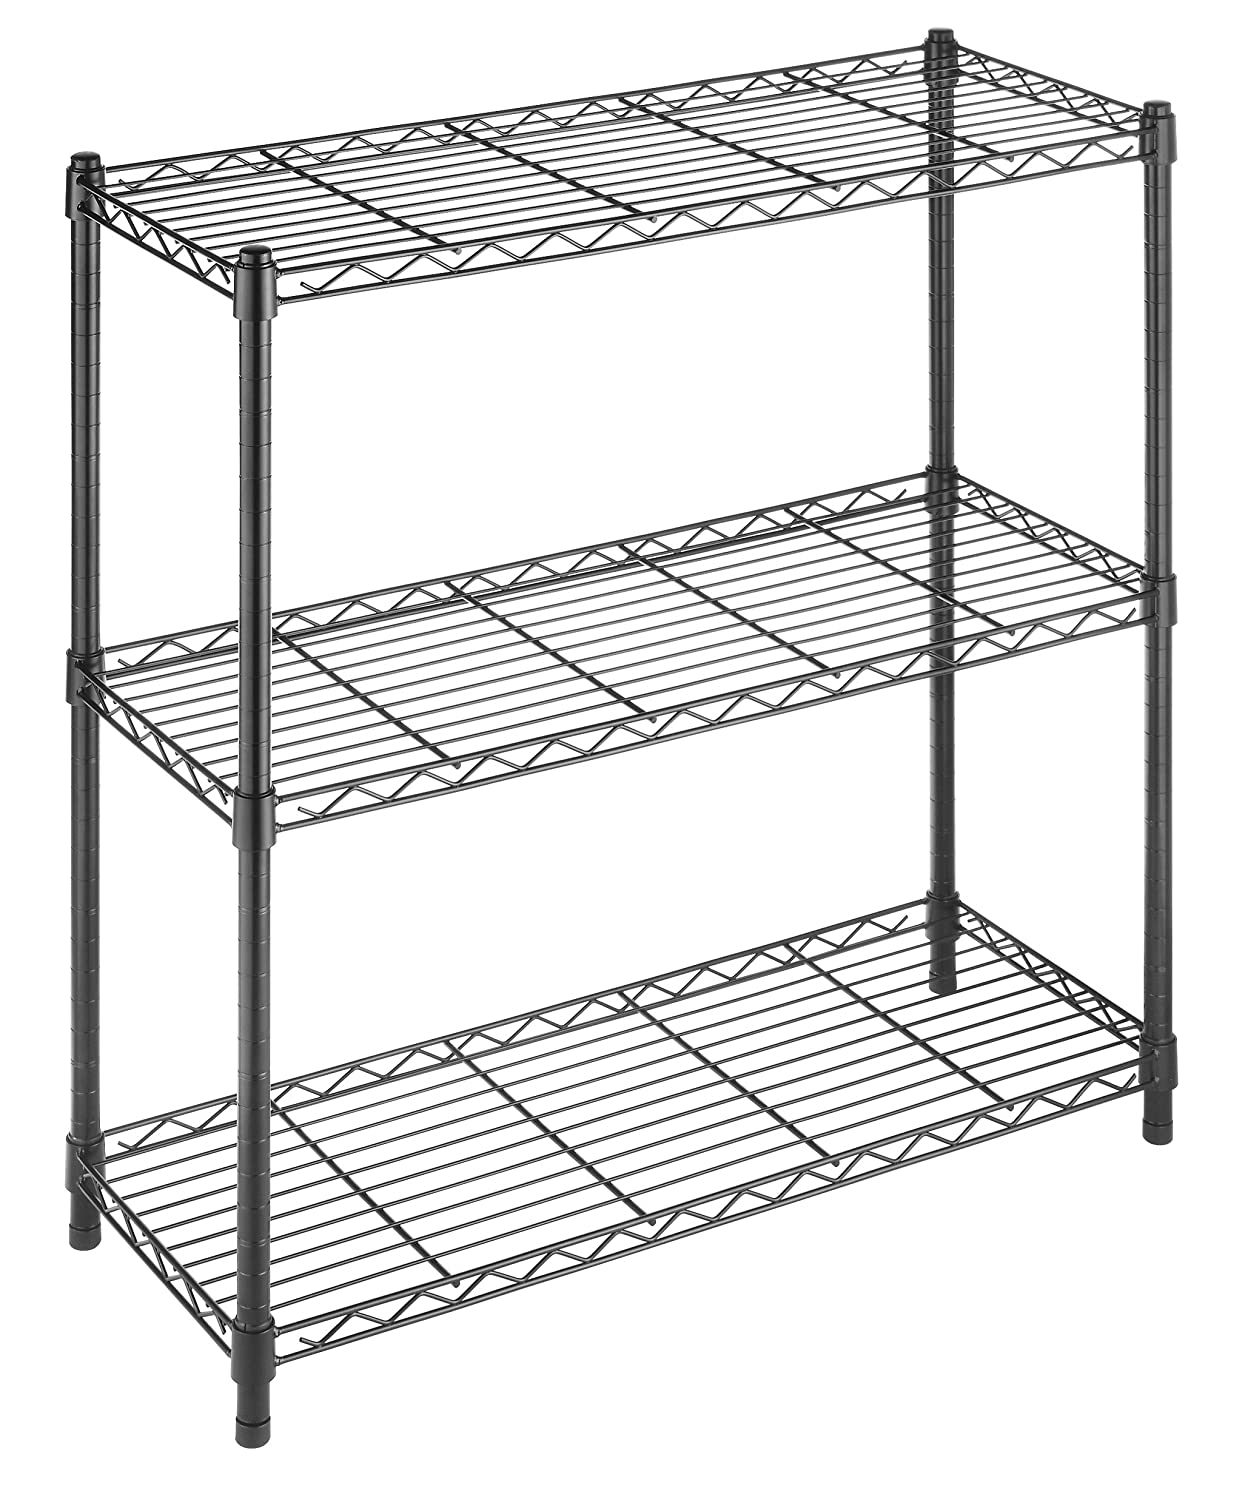 Amazon.com: Whitmor Supreme 3 Tier Shelving with Adjustable Shelves ...